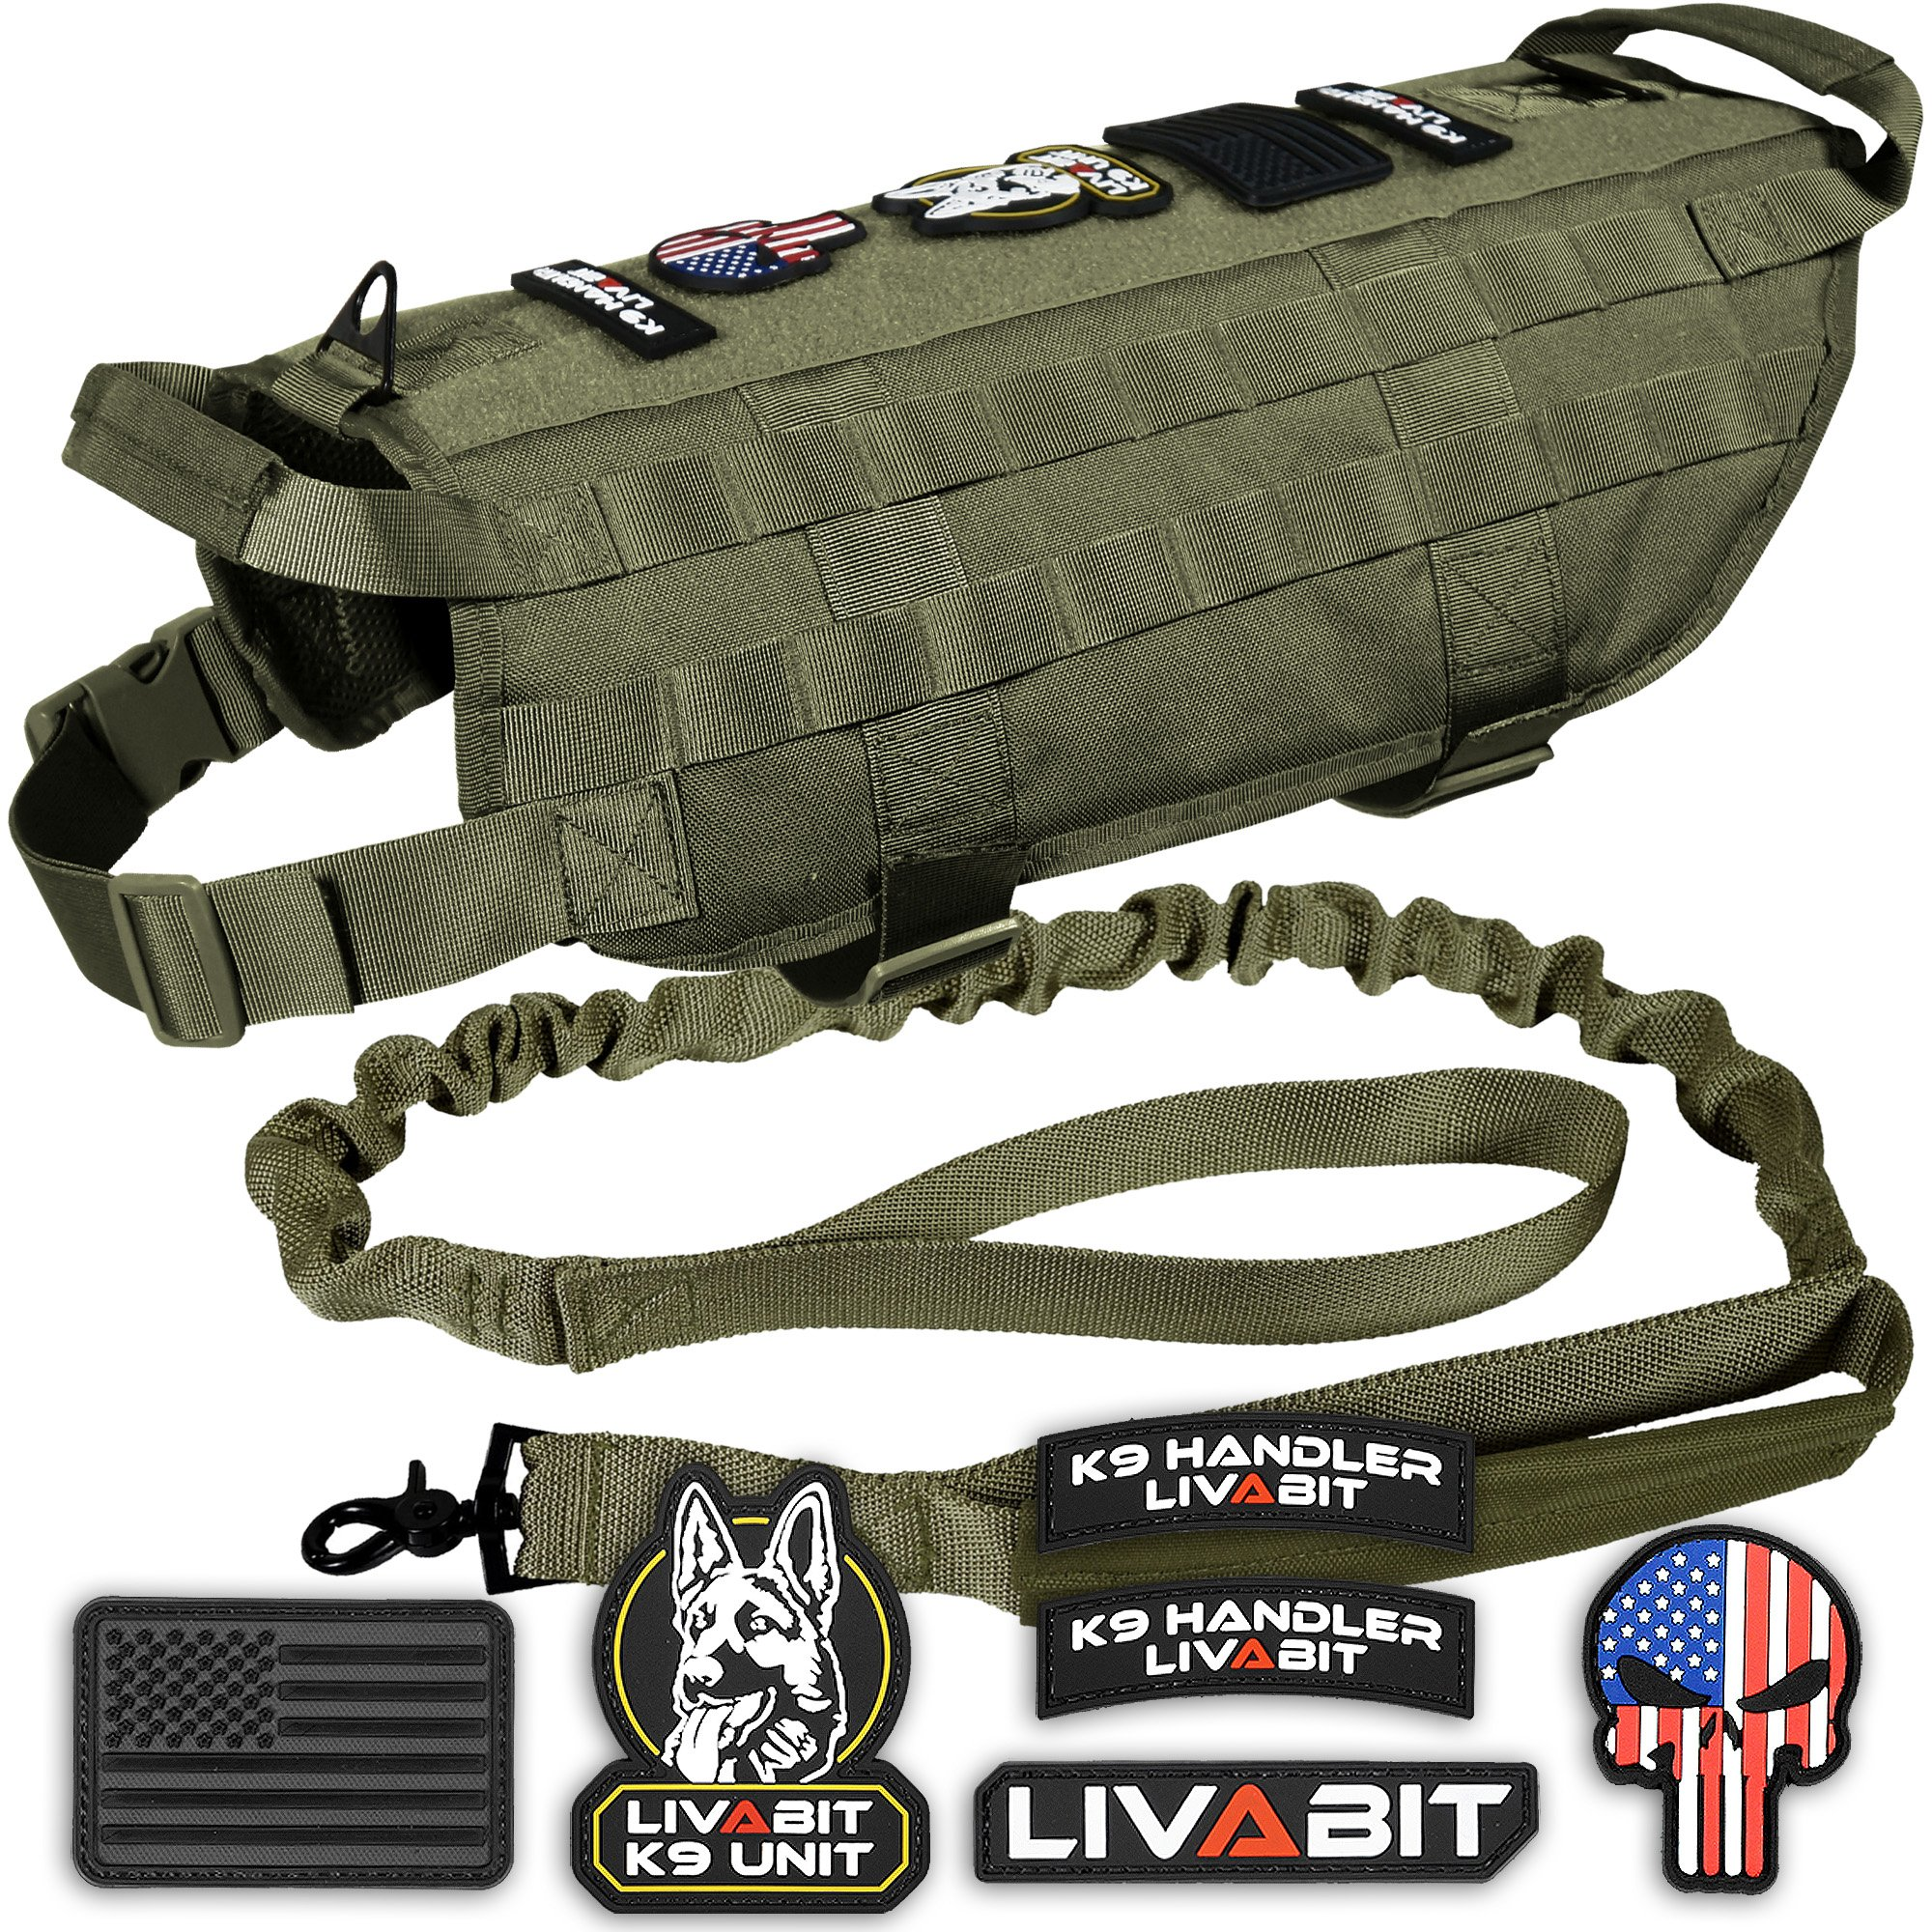 LIVABIT [ OD Green Canine Service Dog Tactical Molle Vest Harness + Morale PVC Patches + Matching Heavy Duty Bungee Leash Strap Large by LIVABIT